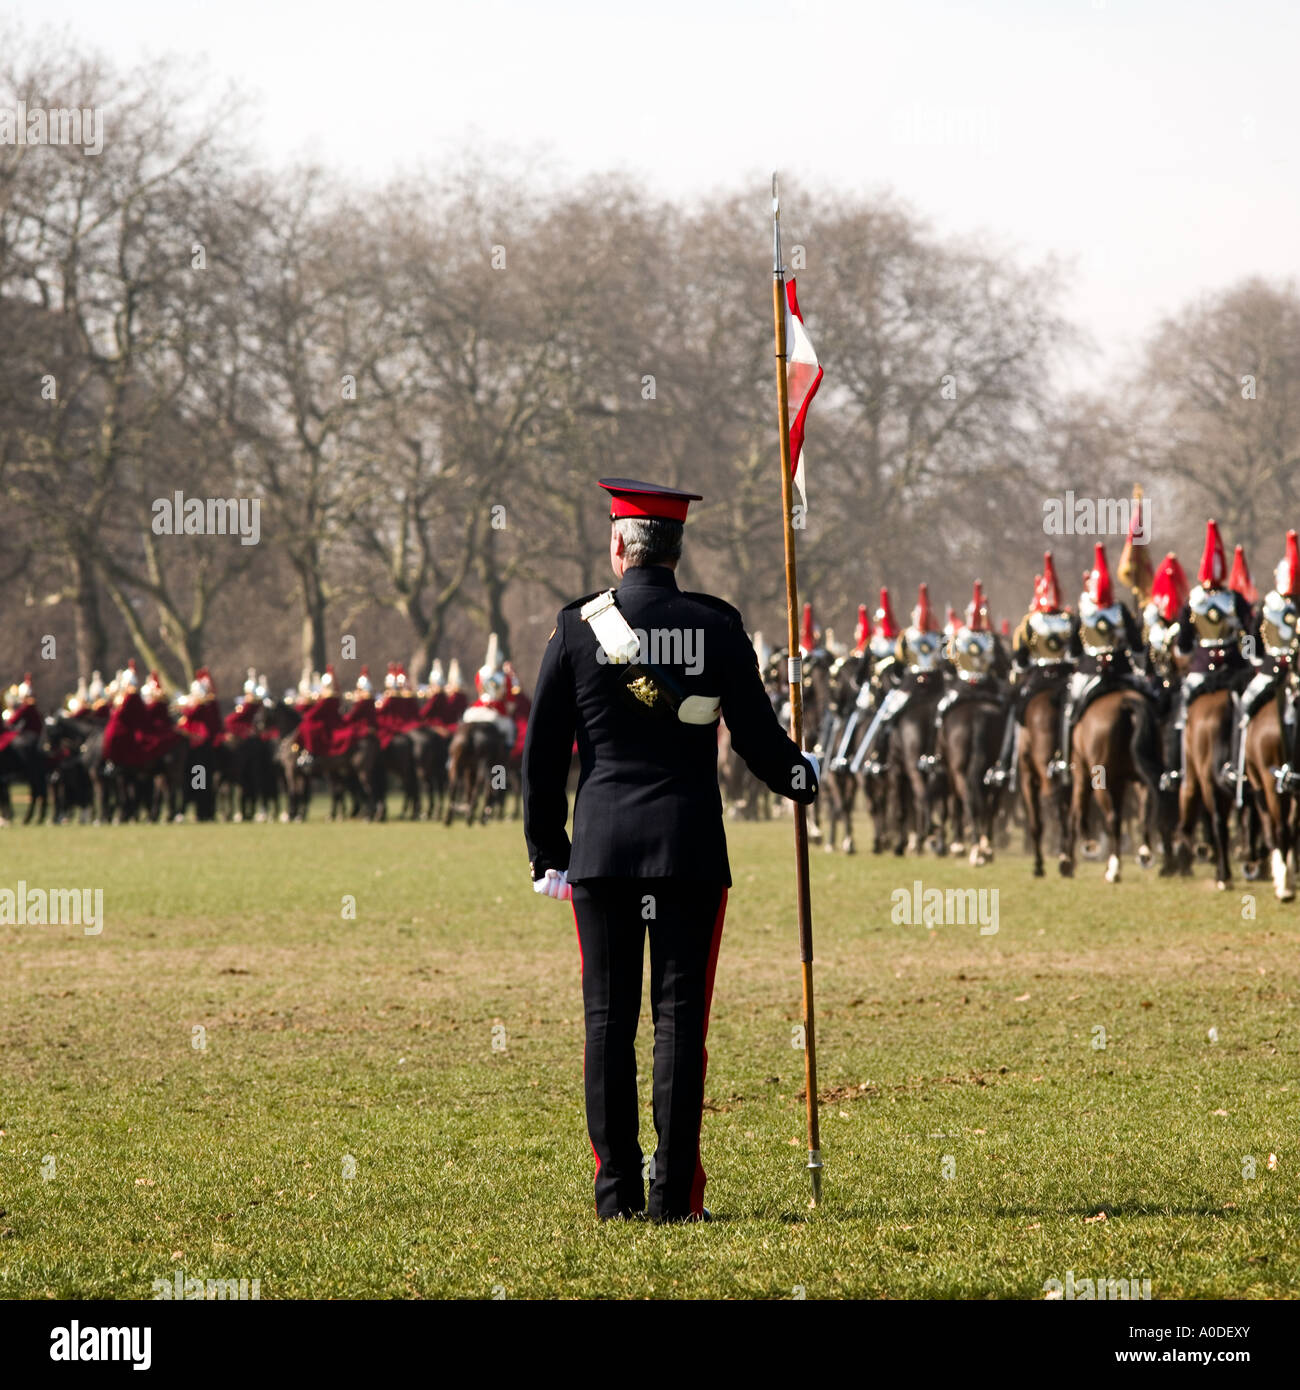 Household Cavalry training No model release required: back view, blur,  and uniform makes all unrecognizable - Stock Image